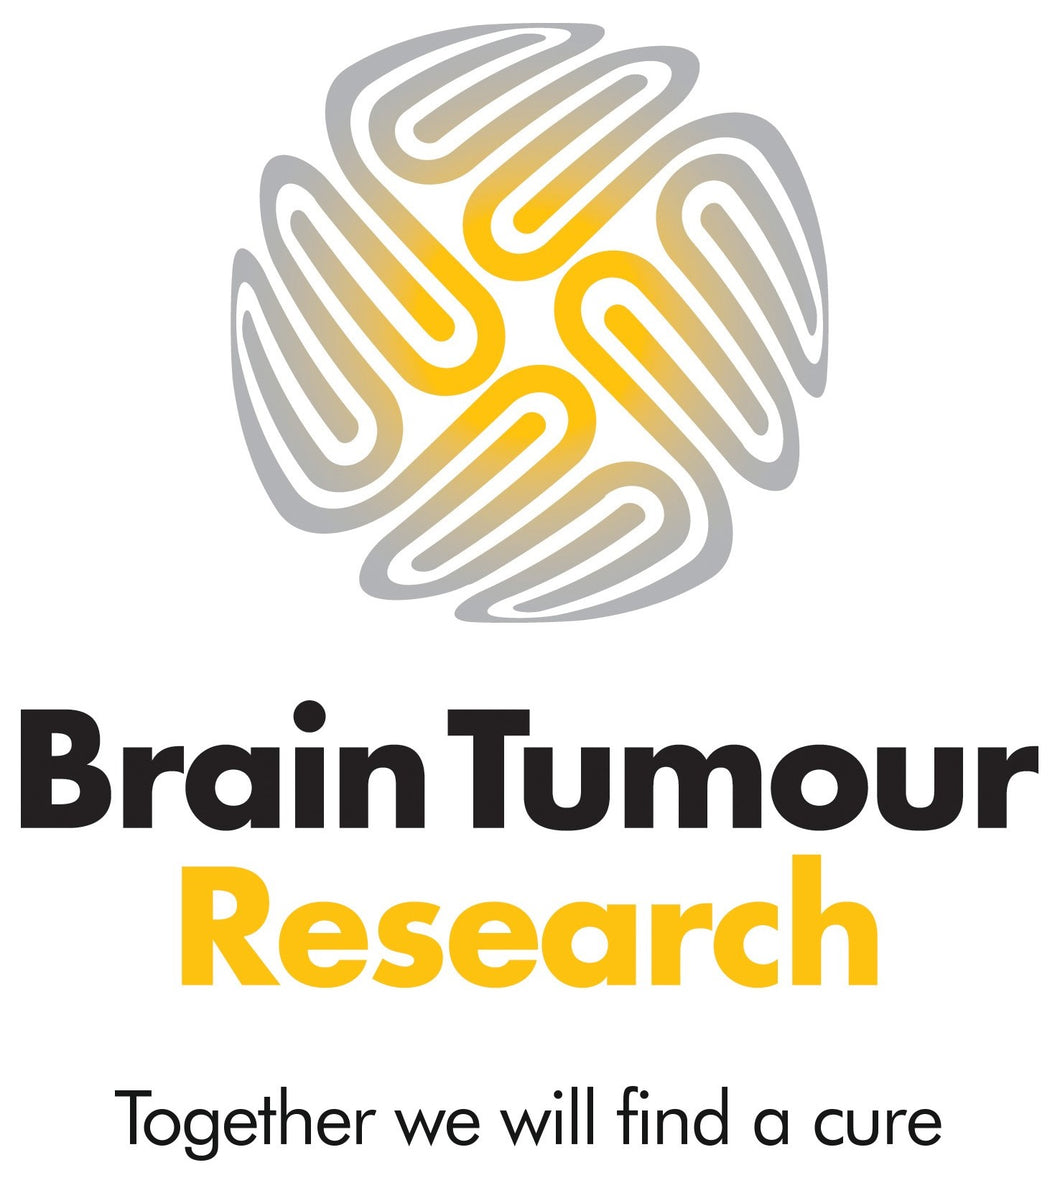 Donate to Brain Tumour Research!